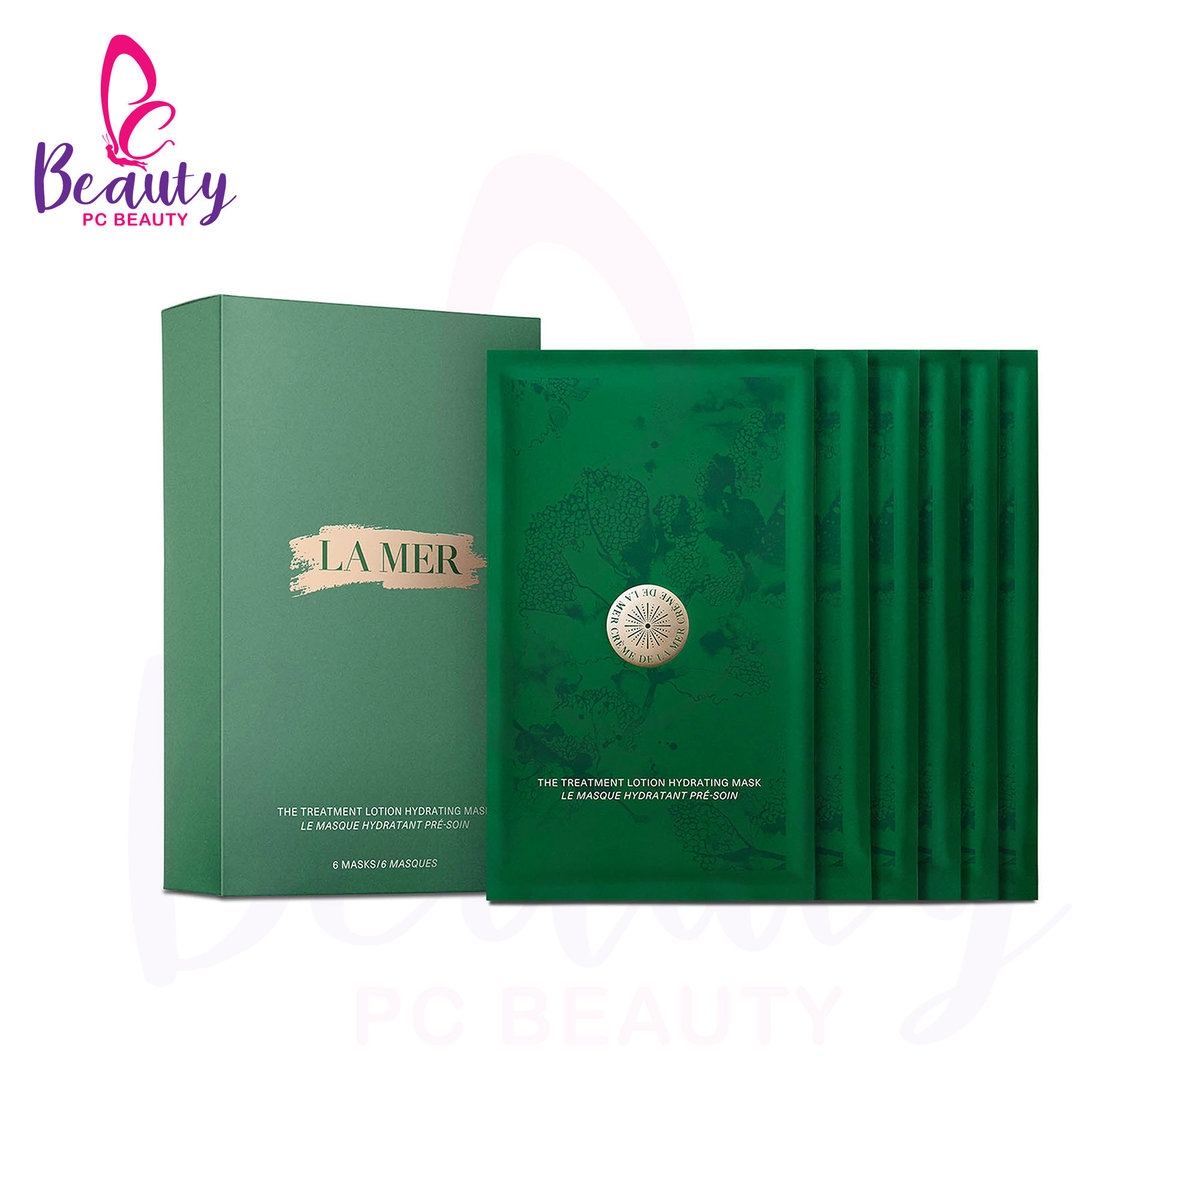 LA MER THE TREATMENT LOTION HYDRATING MASK 6PCS [Parallel Import Product]